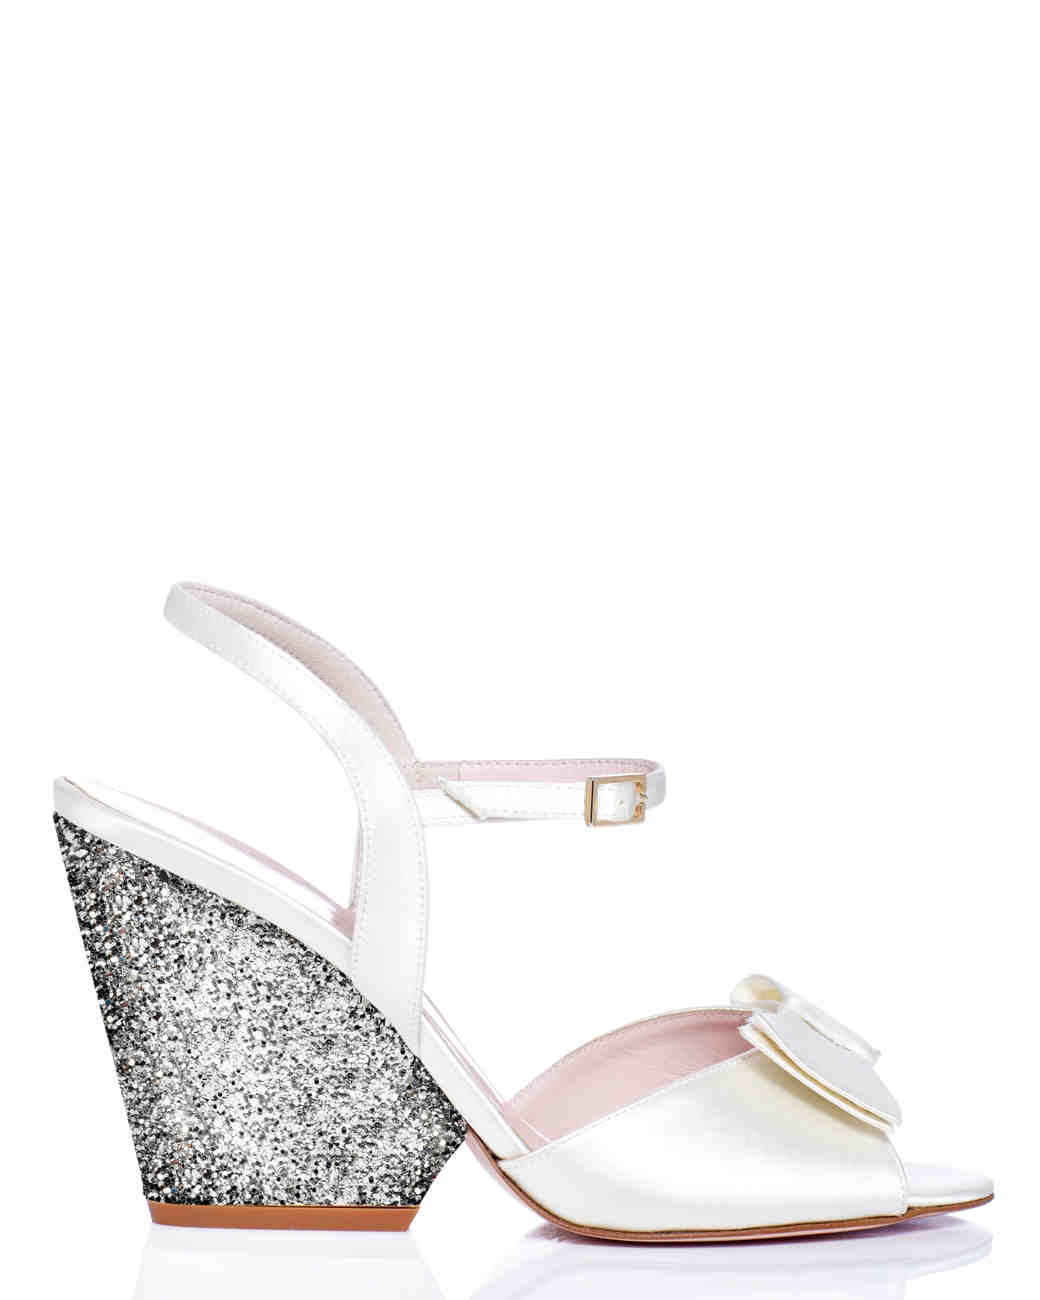 summer-wedding-shoes-kate-spade-imari-0515.jpg